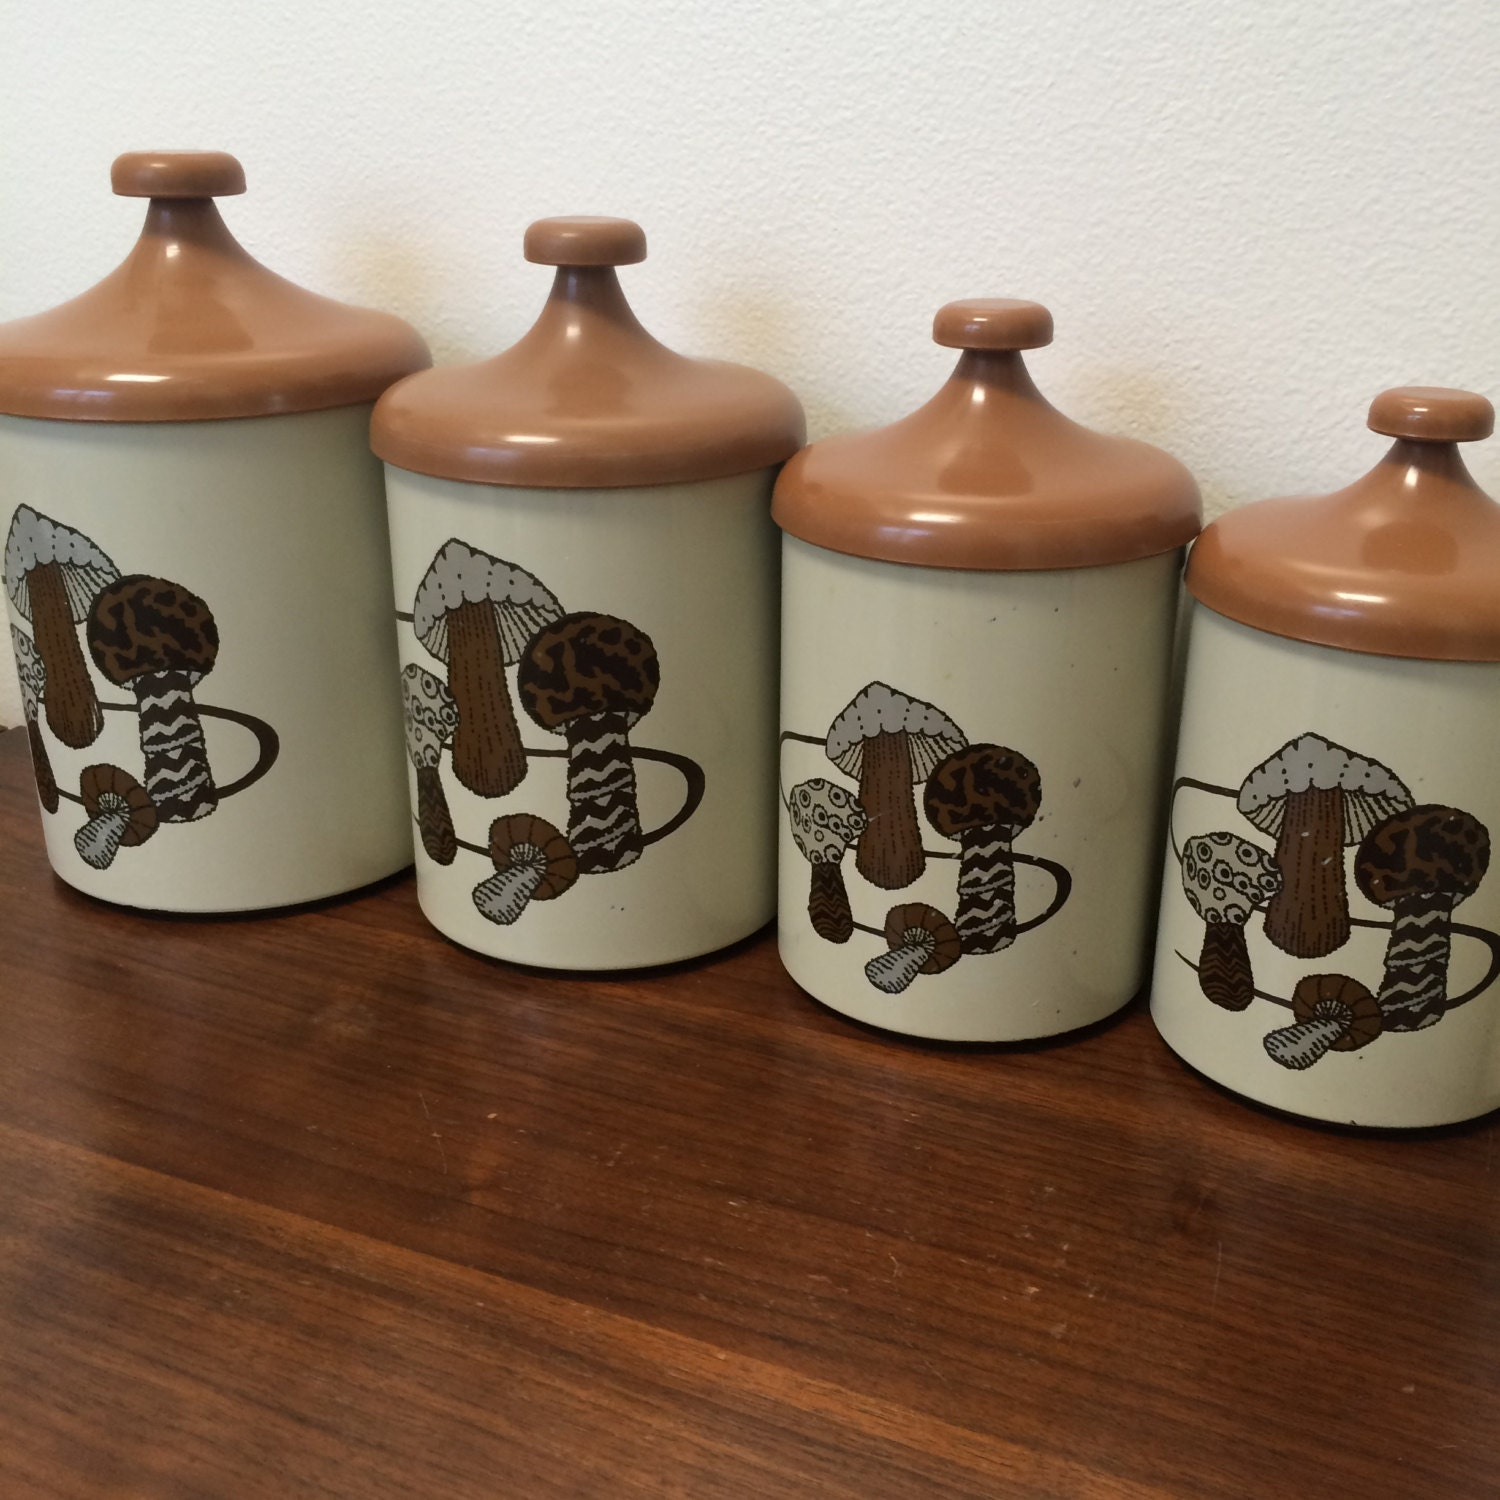 28 designer kitchen canister sets designer kitchen canister designer kitchen canister sets vintage kitchen canister set mushroom design by pantry queen designer kitchen canister sets